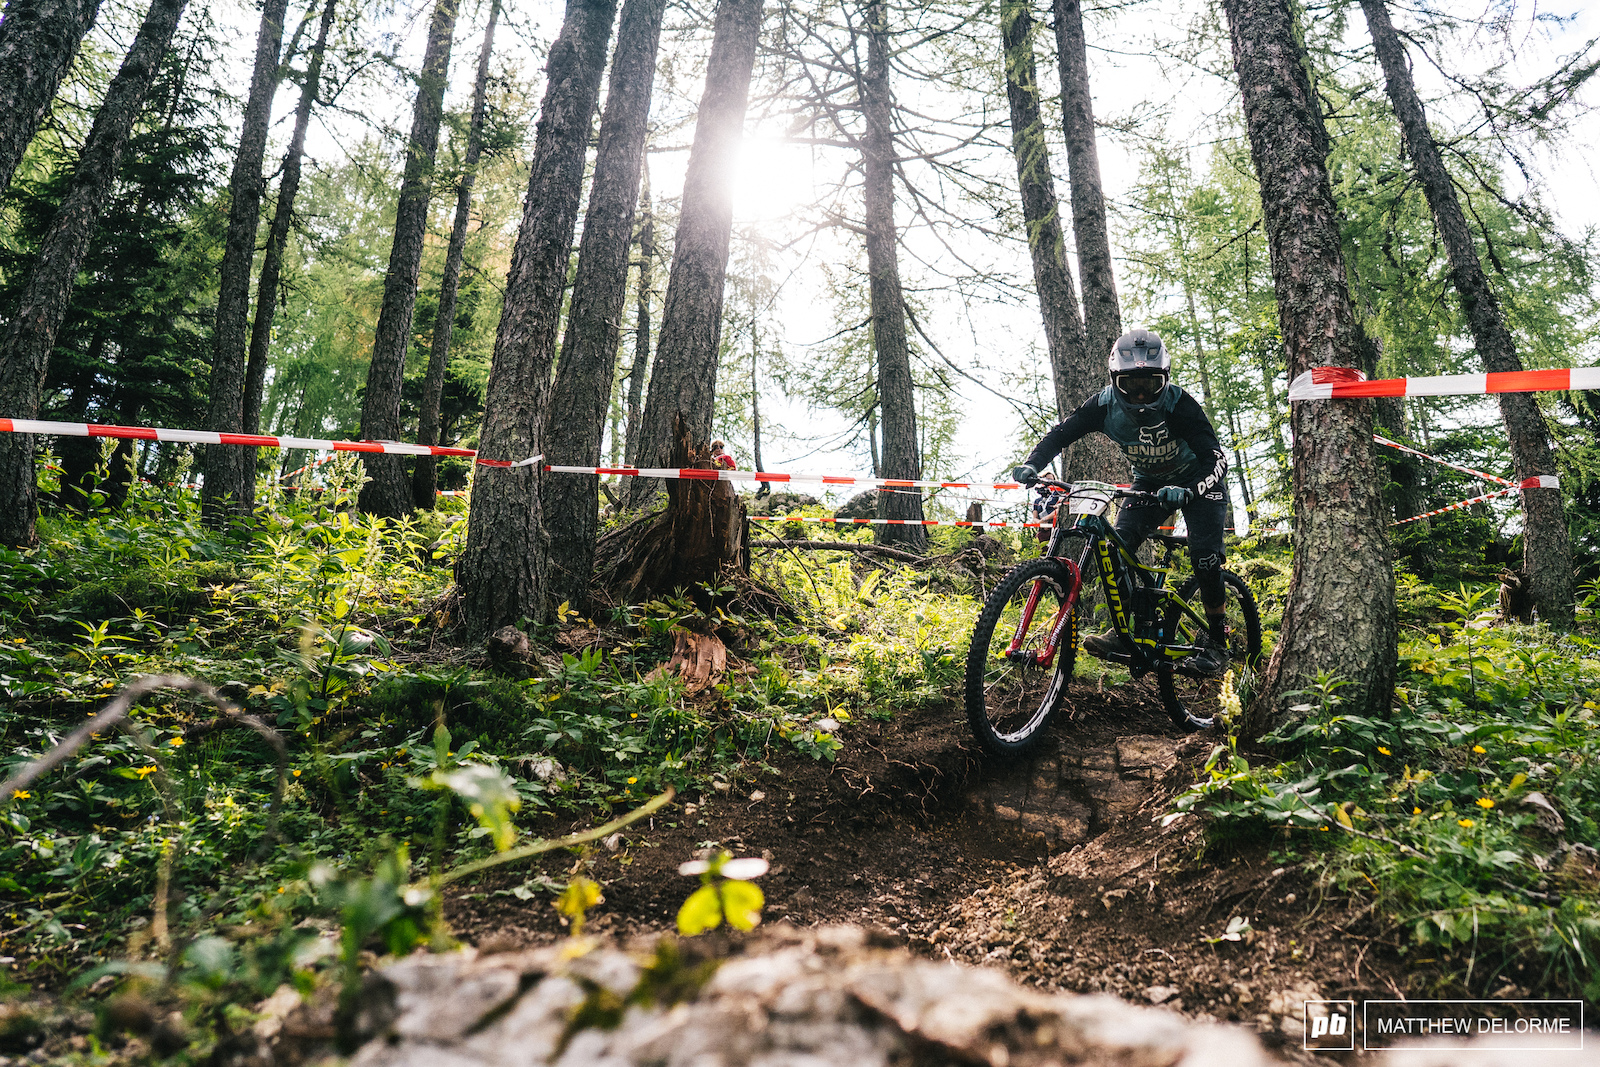 Damien Oton sits in sixth after day one with a second place on stage one.